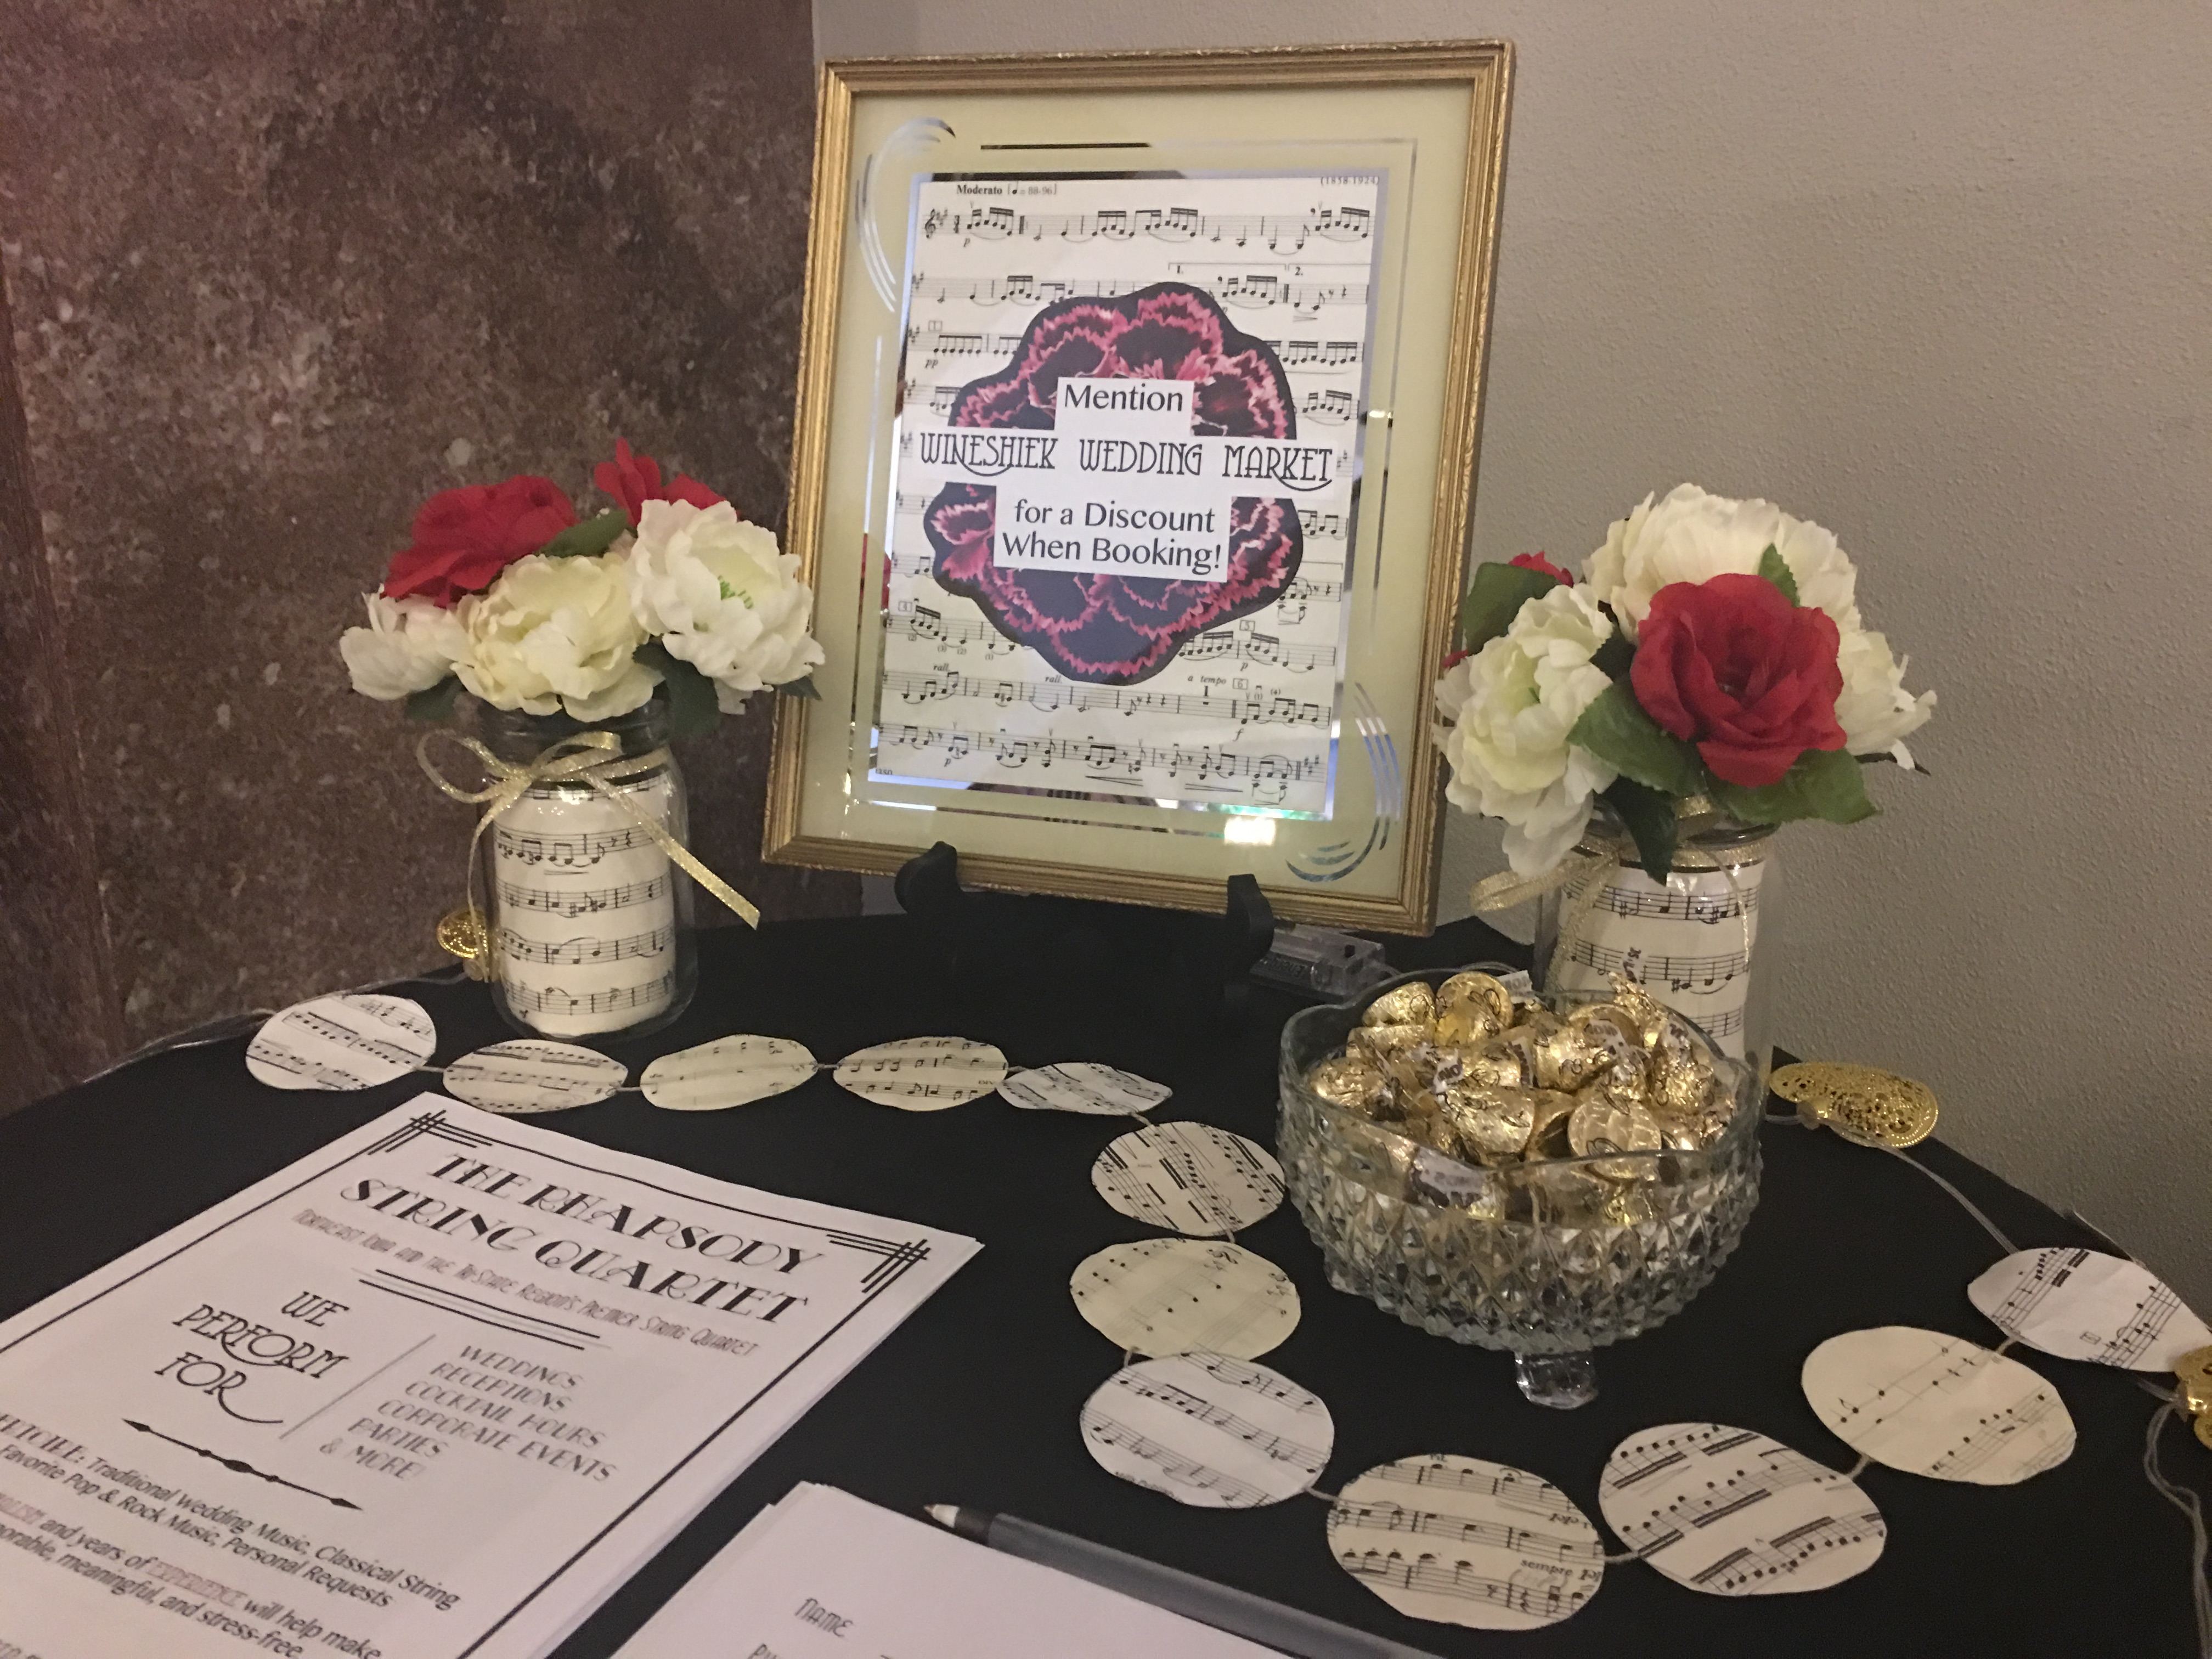 Find Us at Area Wedding Markets